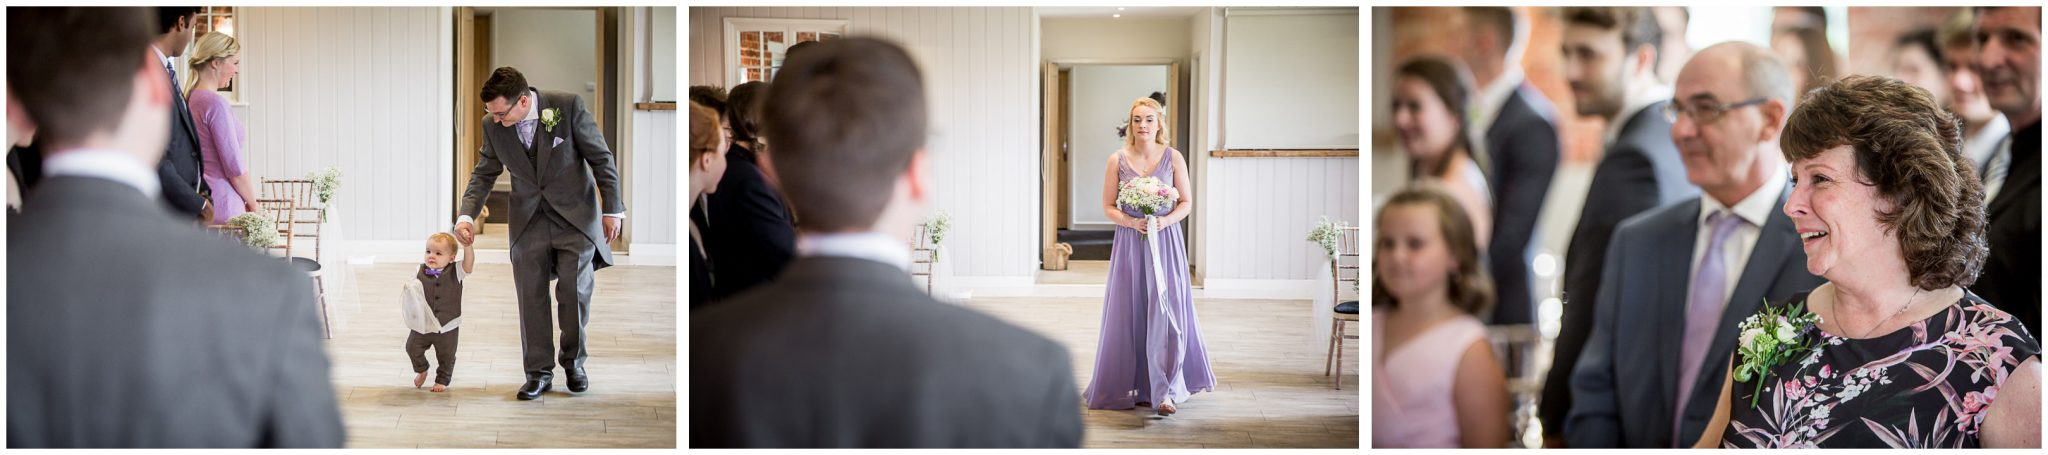 Sopley Mill wedding photography page and bridesmaid walk down the aisle